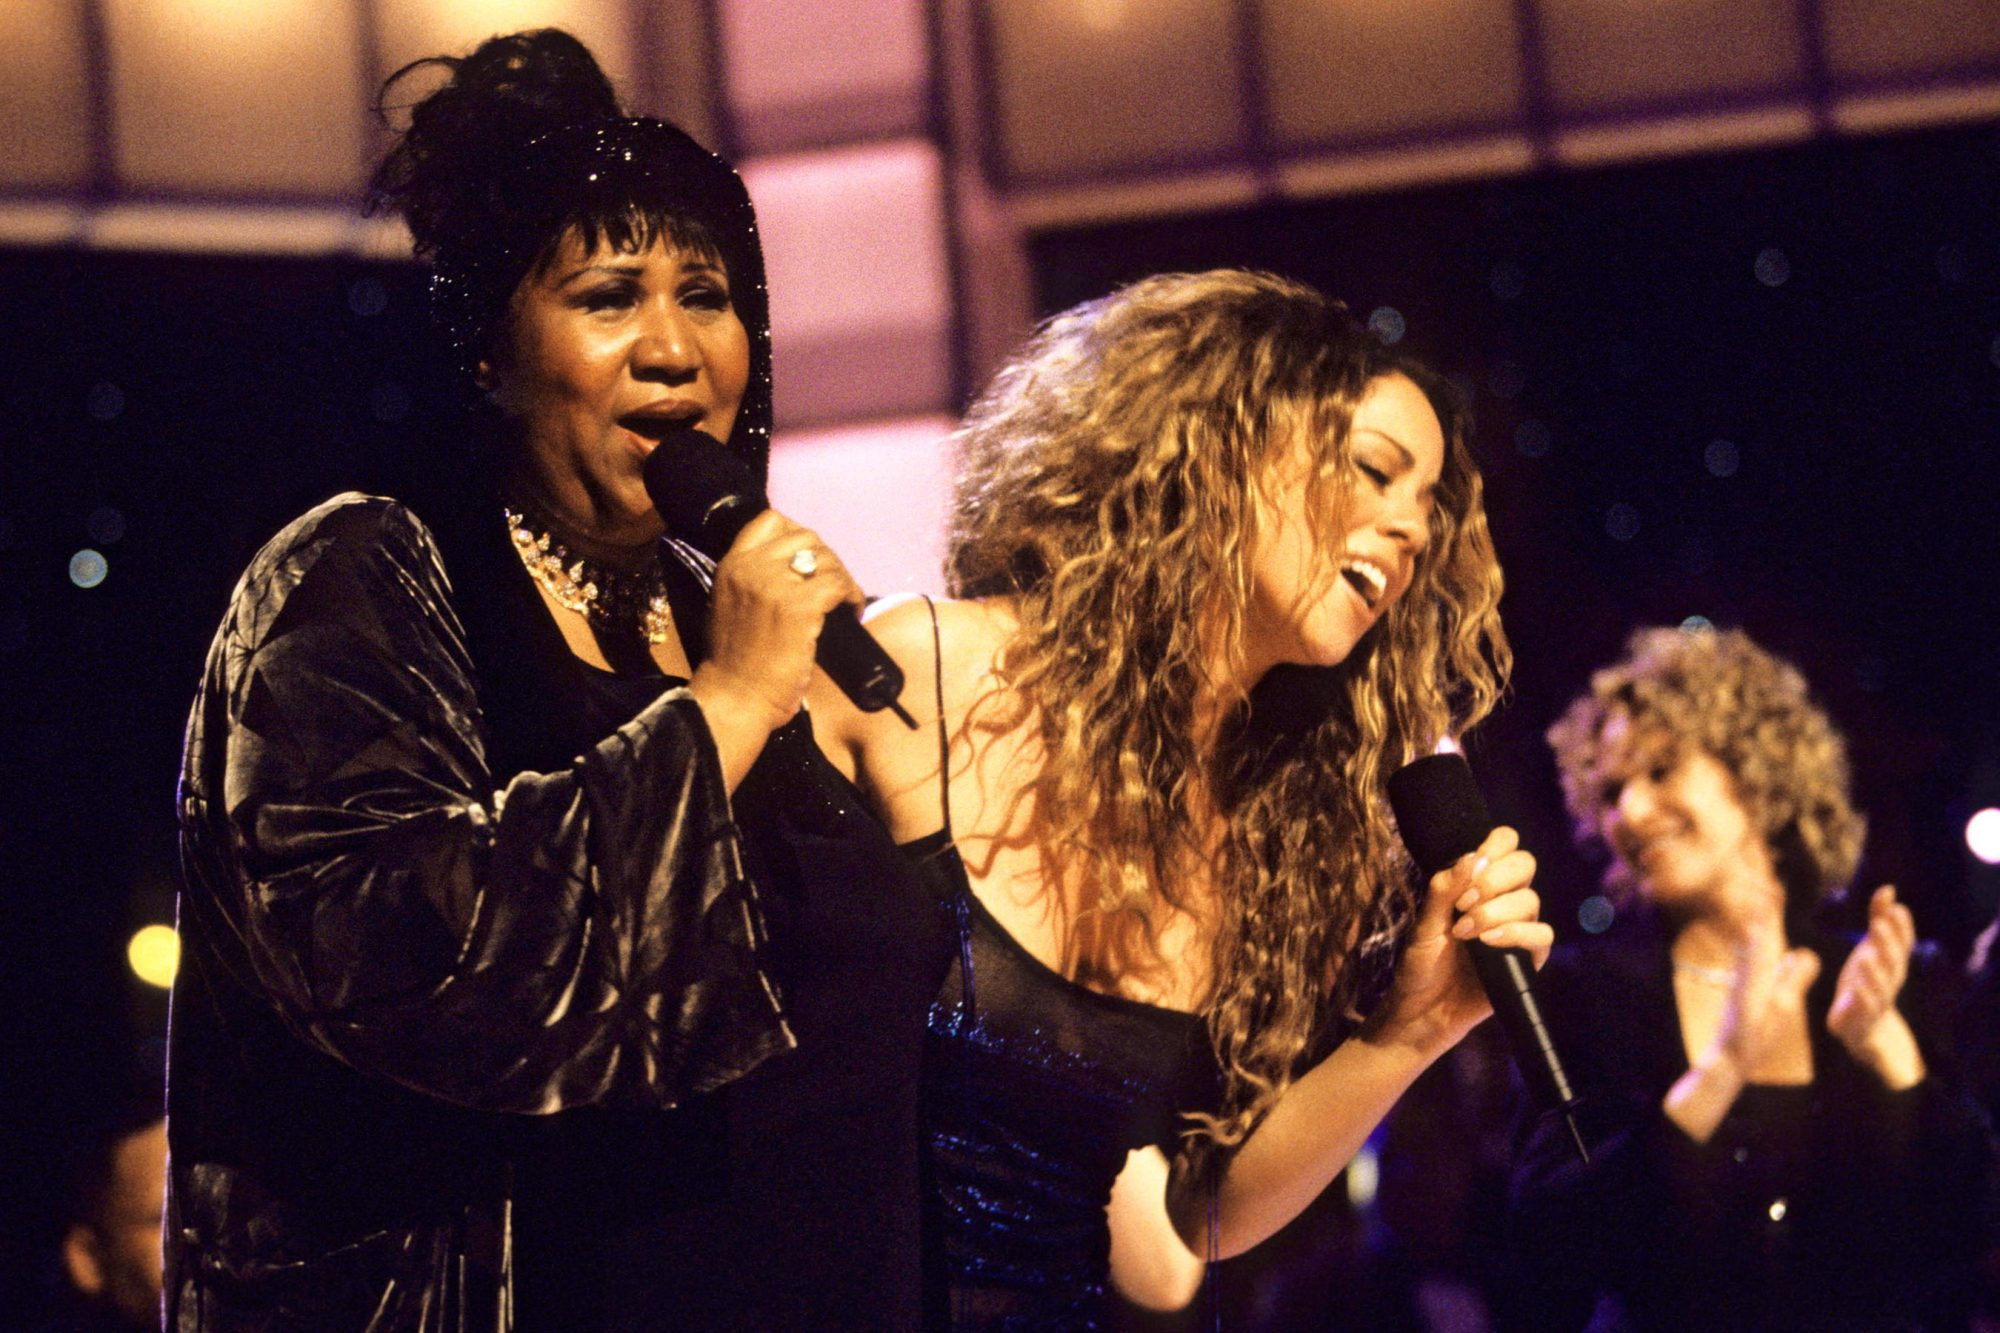 Performing with Mariah Carey for VH1 Divas Live in 1998